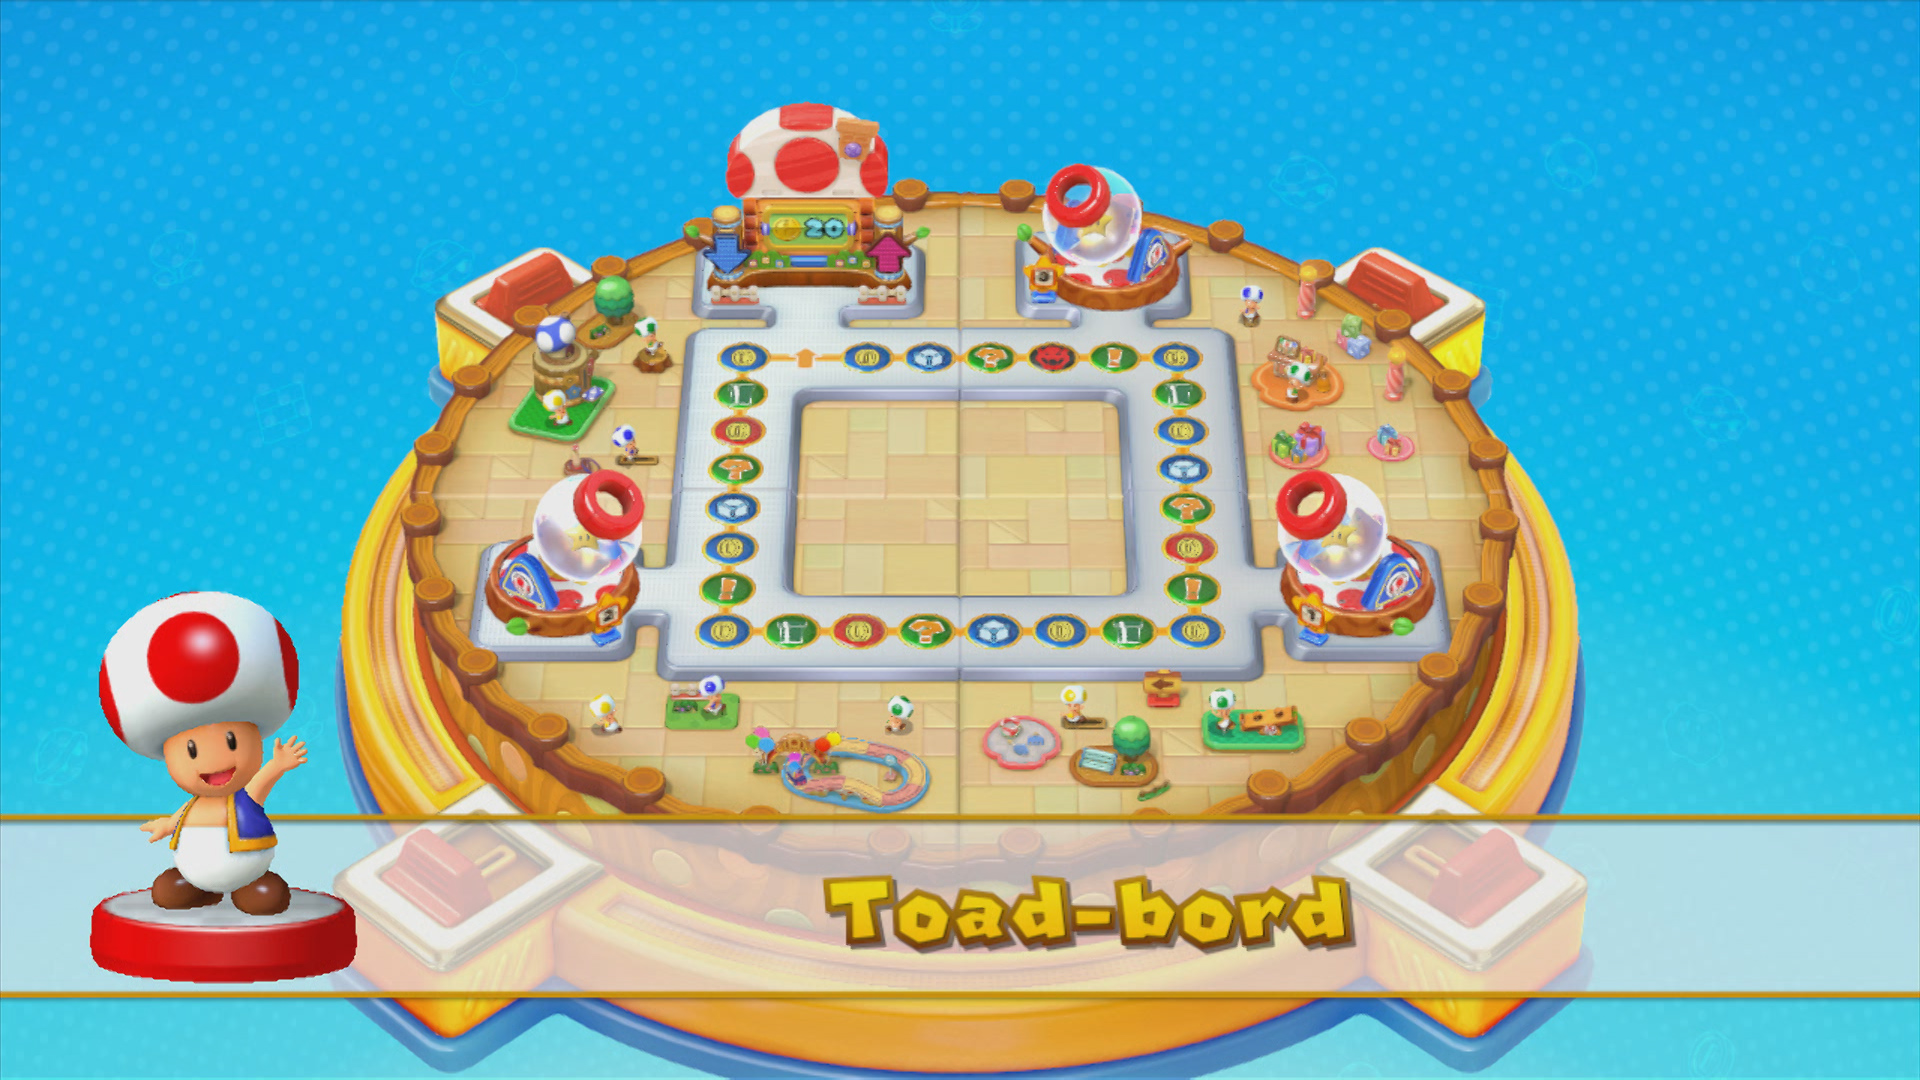 MP10_amiibo_board_toad_NL